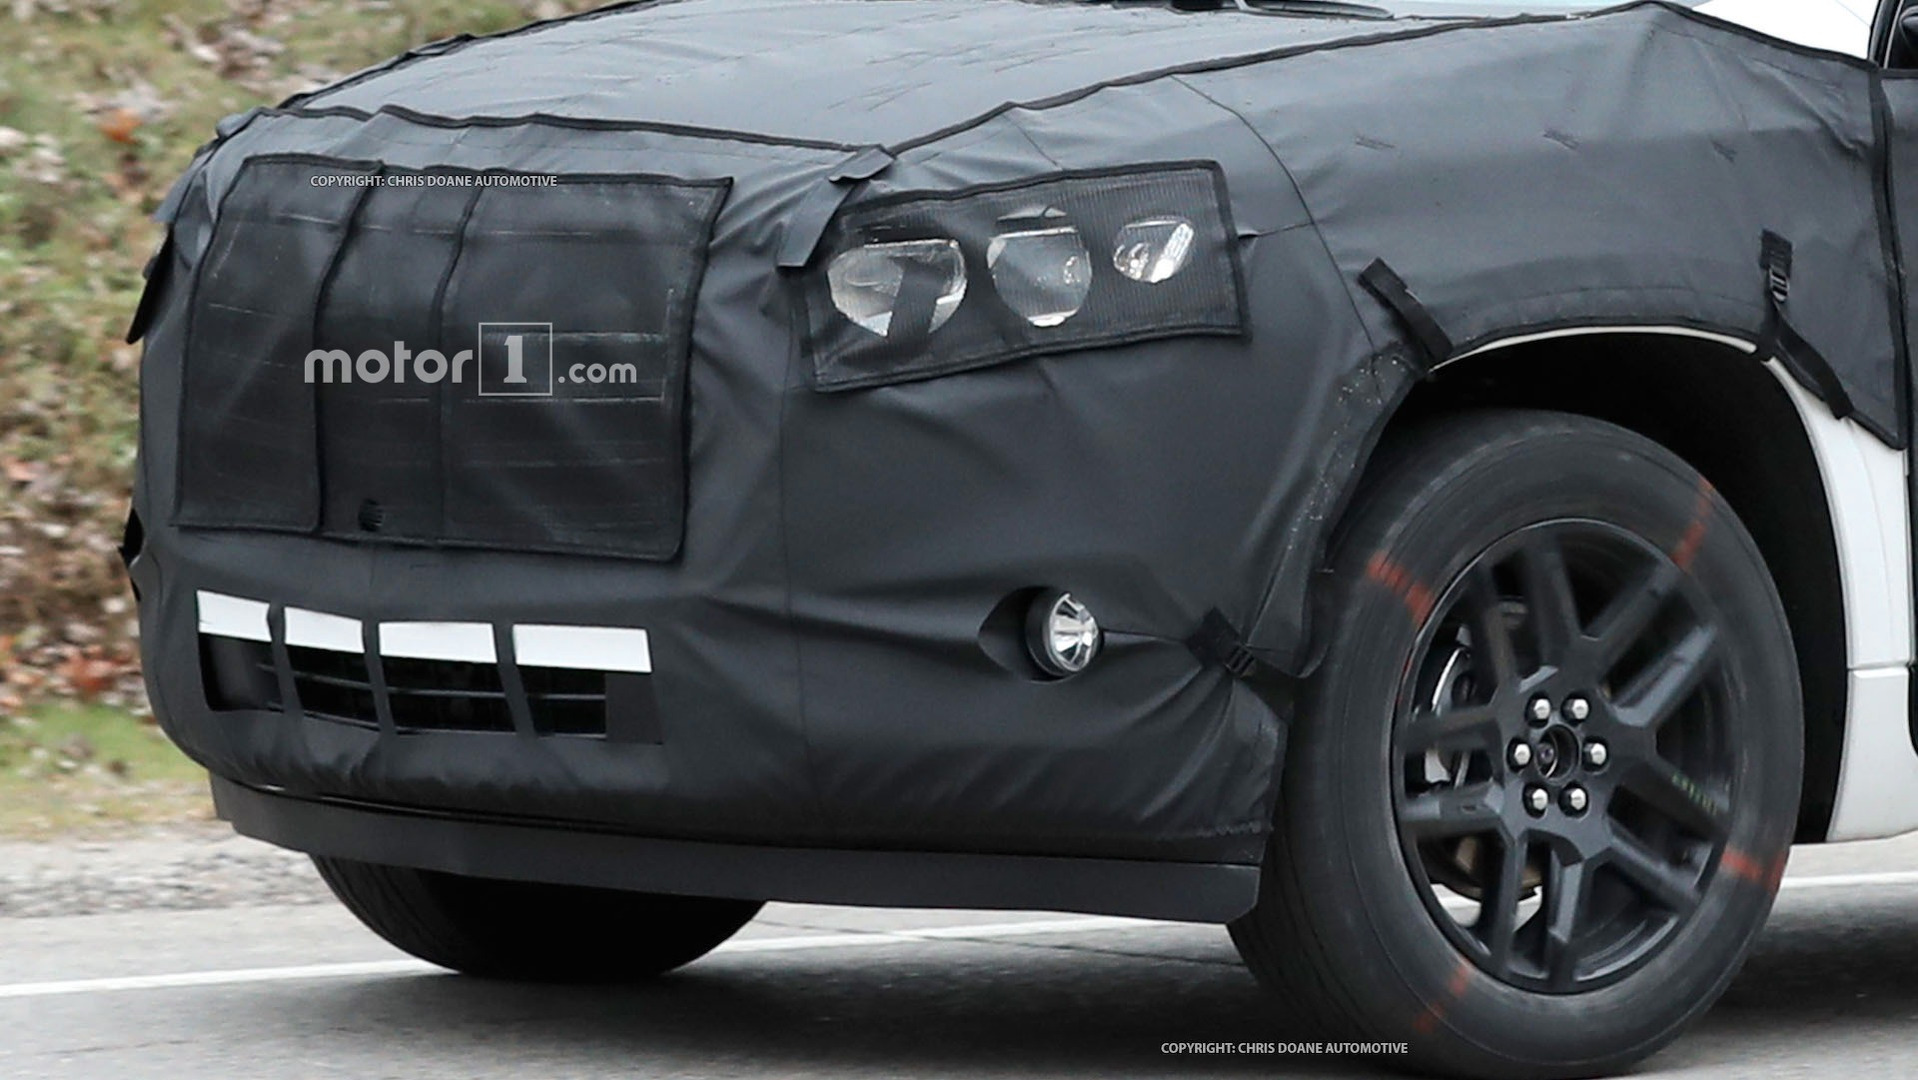 2018-chevy-cuv-spy-photos-15